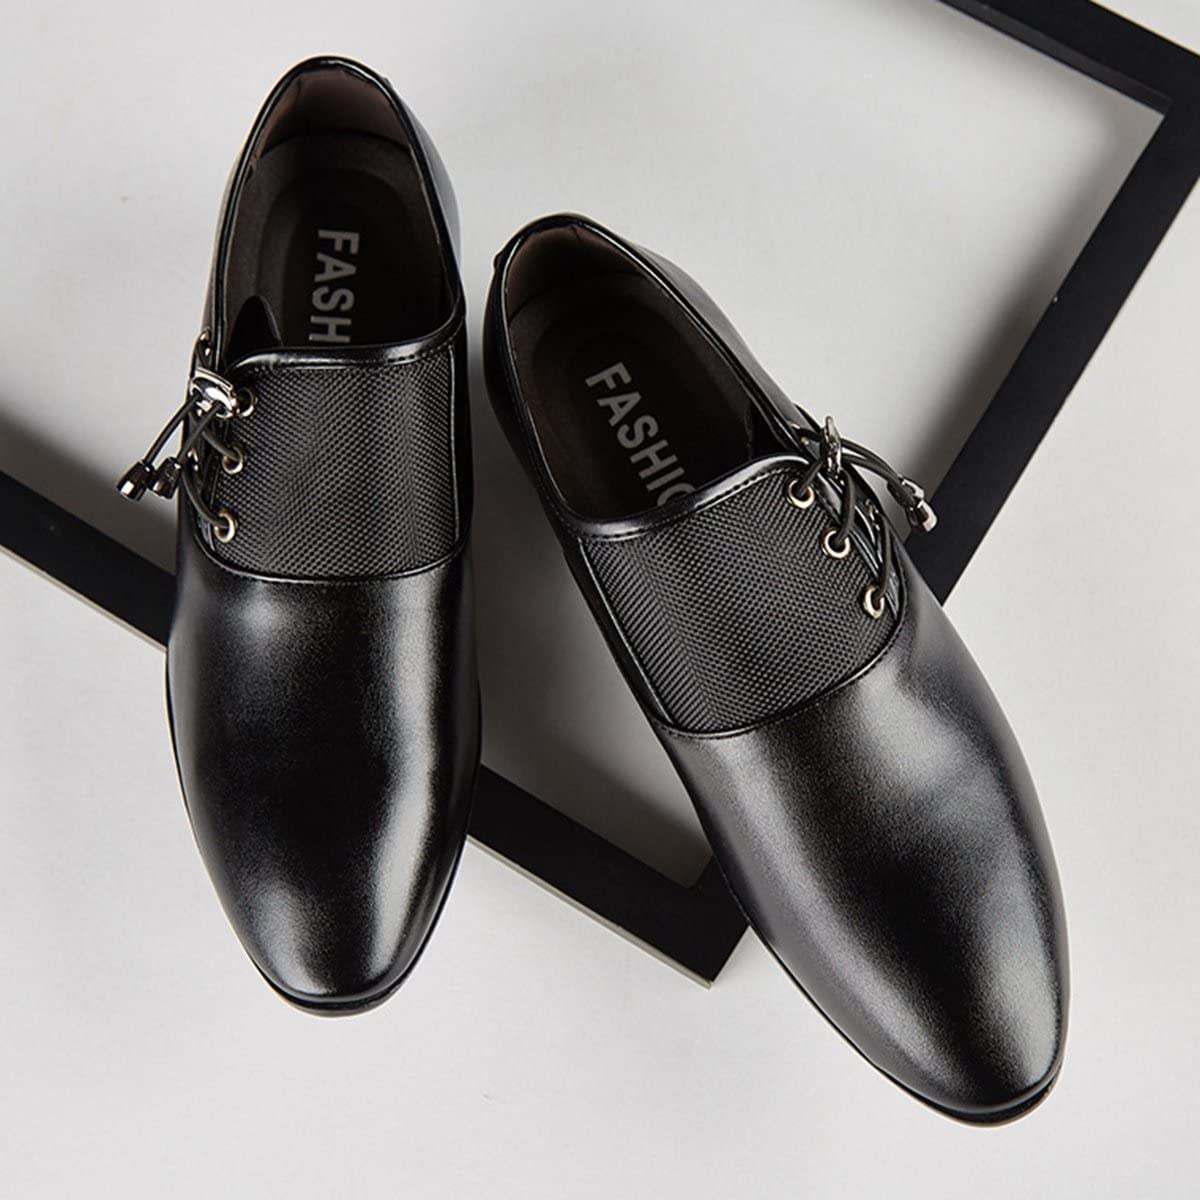 FOXSENSE Pointed Patent Leather Fashion lace up Shoes for Men